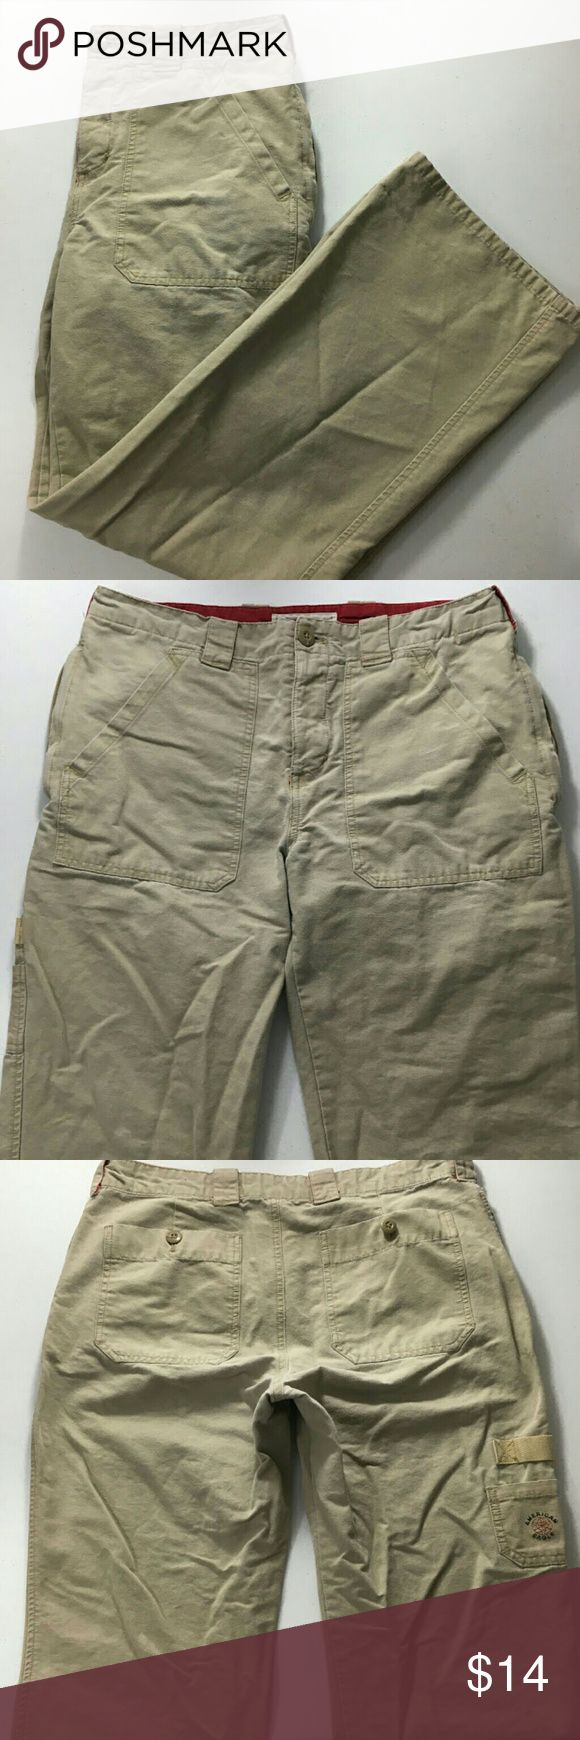 """American Eagle Outfitters Womens Cargo Pants EUC Excellent used condition. Shows some minor wear from normal use, especially at bottom of legs (but nothing major, see pics). Women's size 10. Long sleeves. Color cream/khaki. 100% Cotton. Machine wash. Approx. laying flat measurements: 16"""" waist, 10"""" rise, 30"""" inseam, 40"""" long. Remember to bundle up and save more, so check my closet for other treasure finds. American Eagle Outfitters Pants Trousers"""